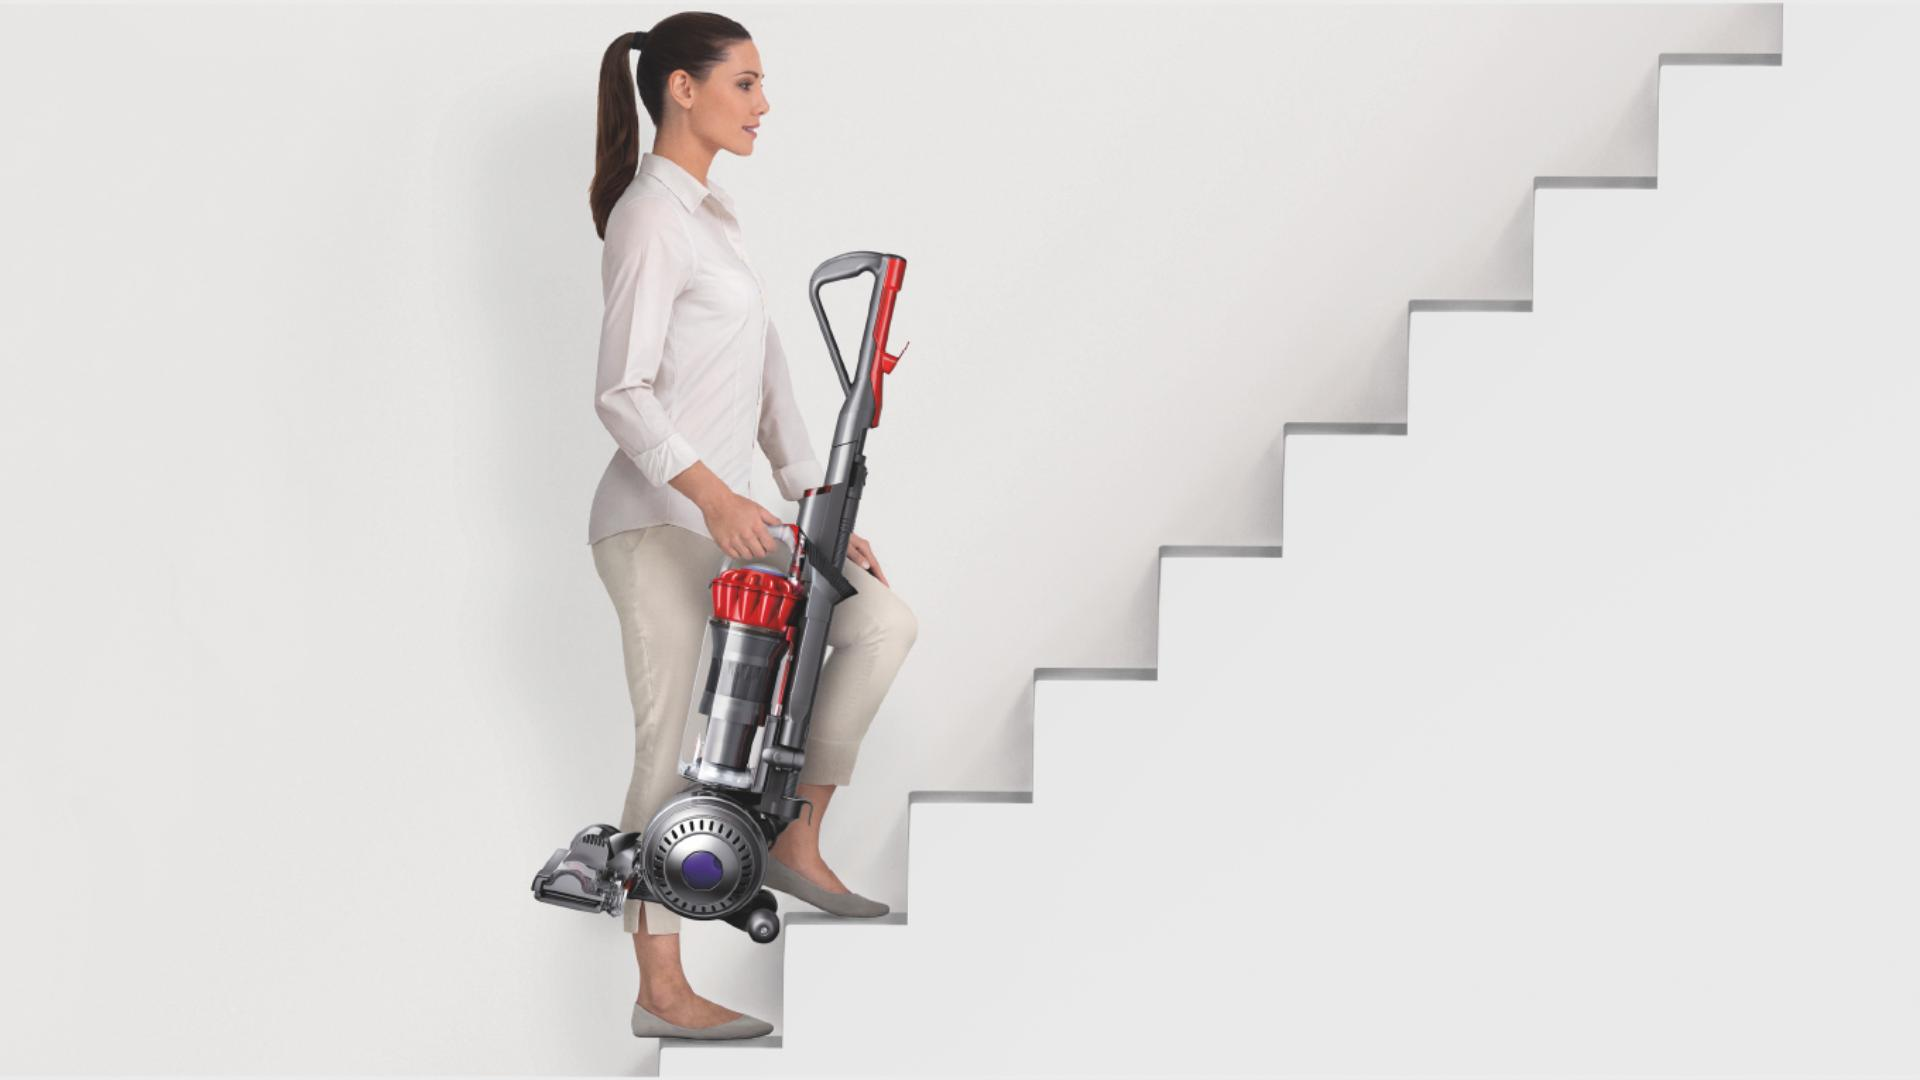 Woman carrying an upright vacuum up a set of stairs.